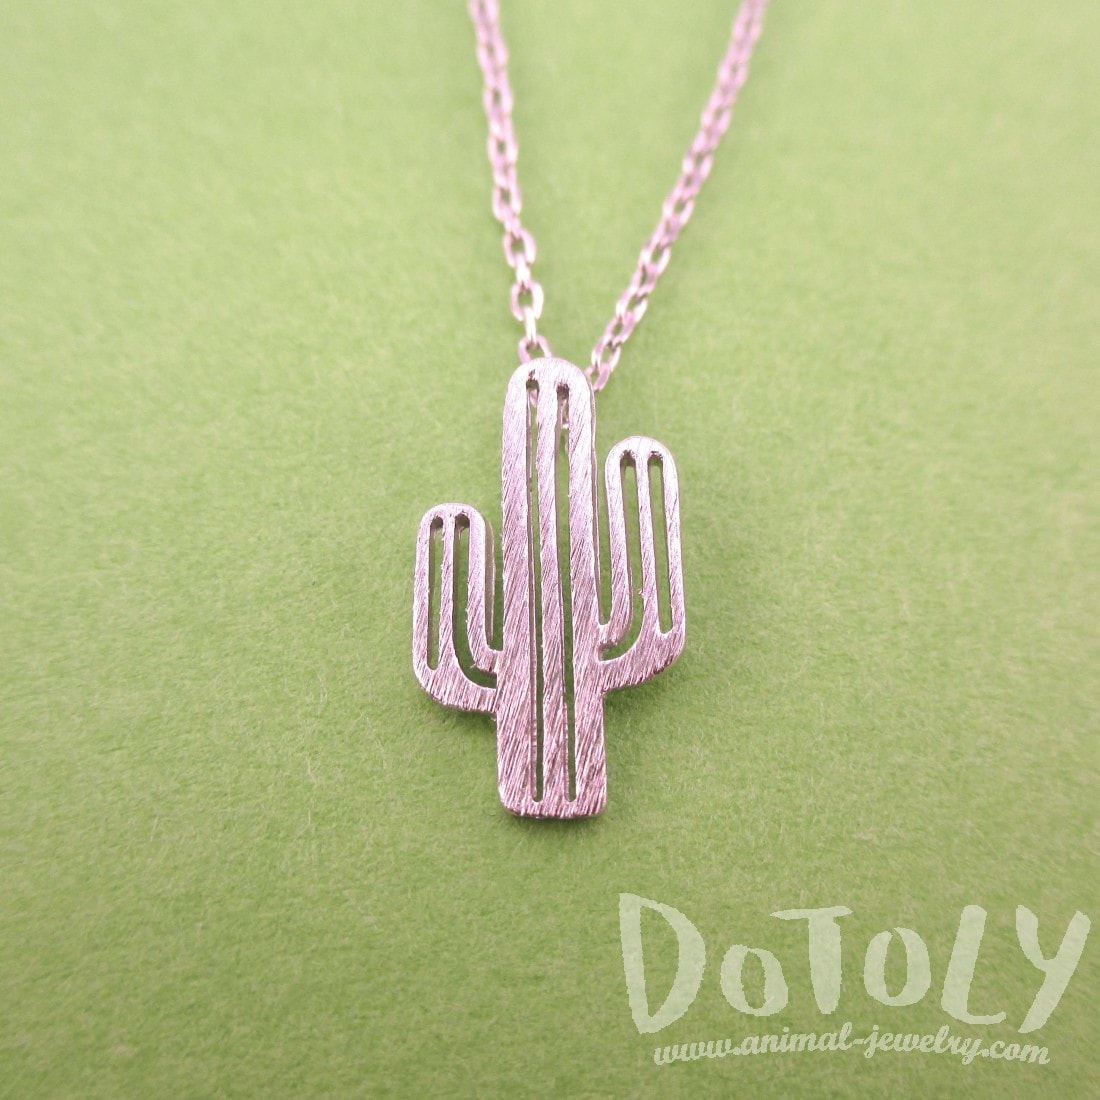 Miniature Arroyo Cactus Shaped Desert Themed Charm Necklace in Silver